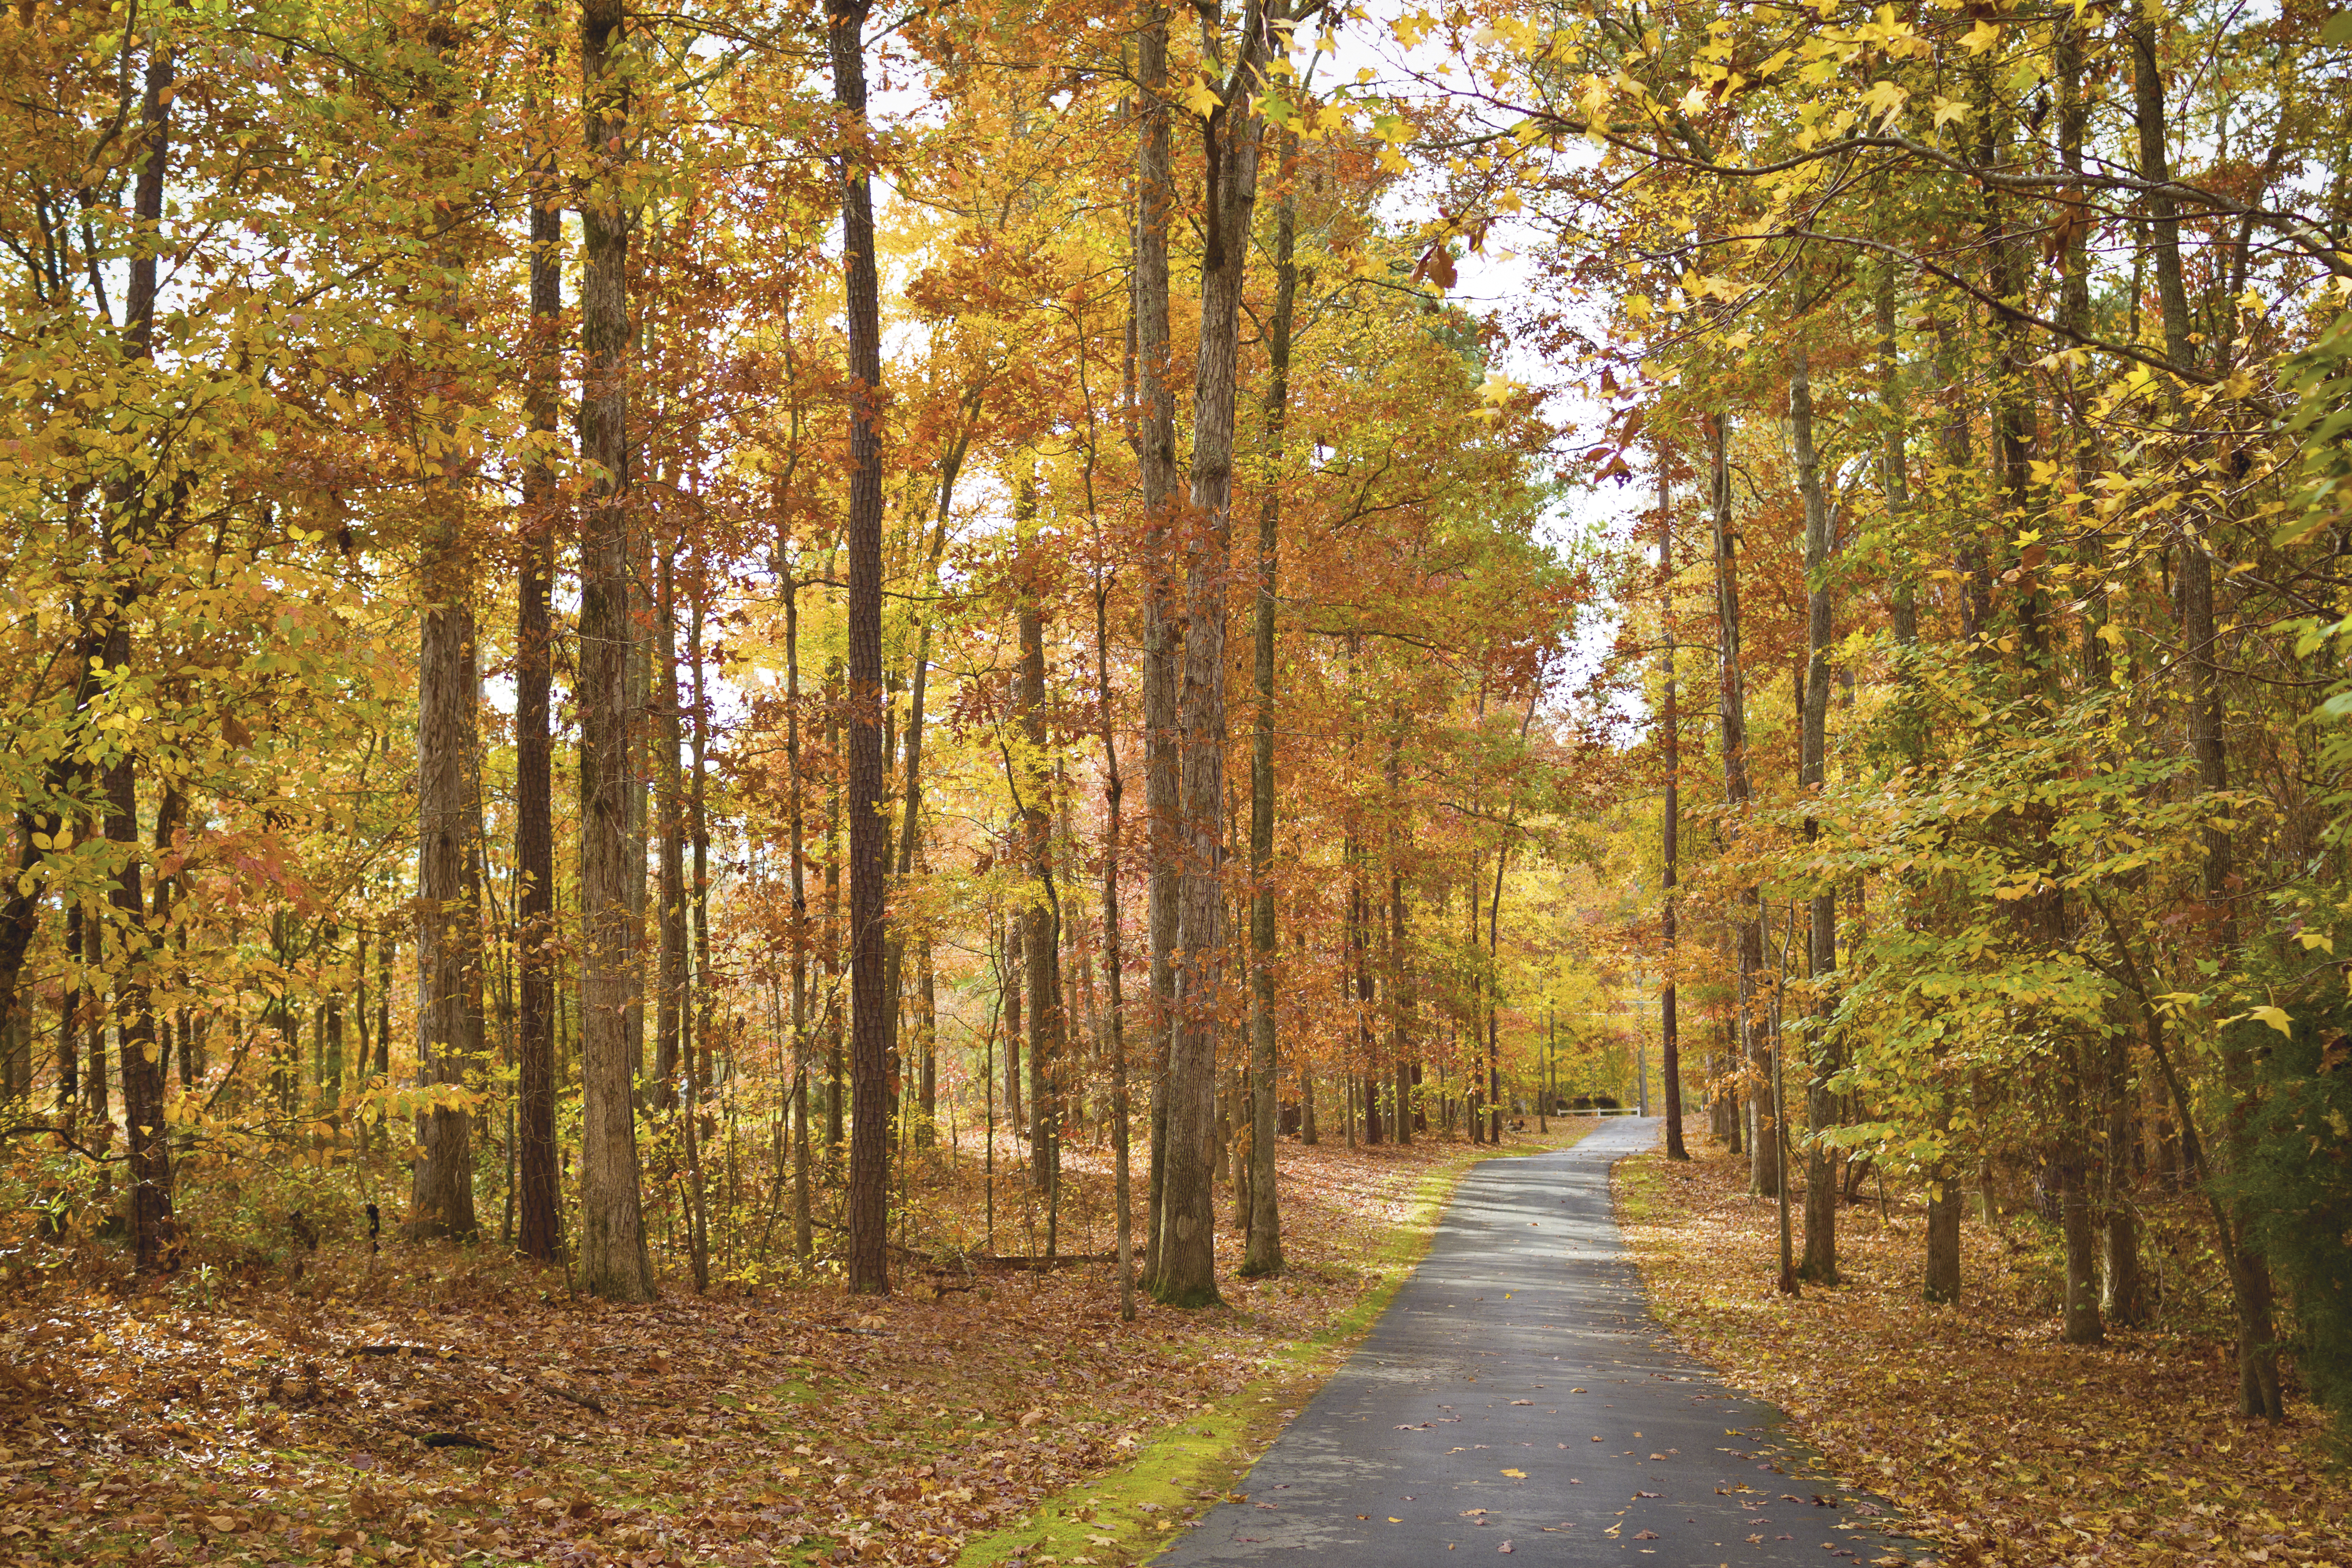 A paved trail with tall trees on both sides in autumn.